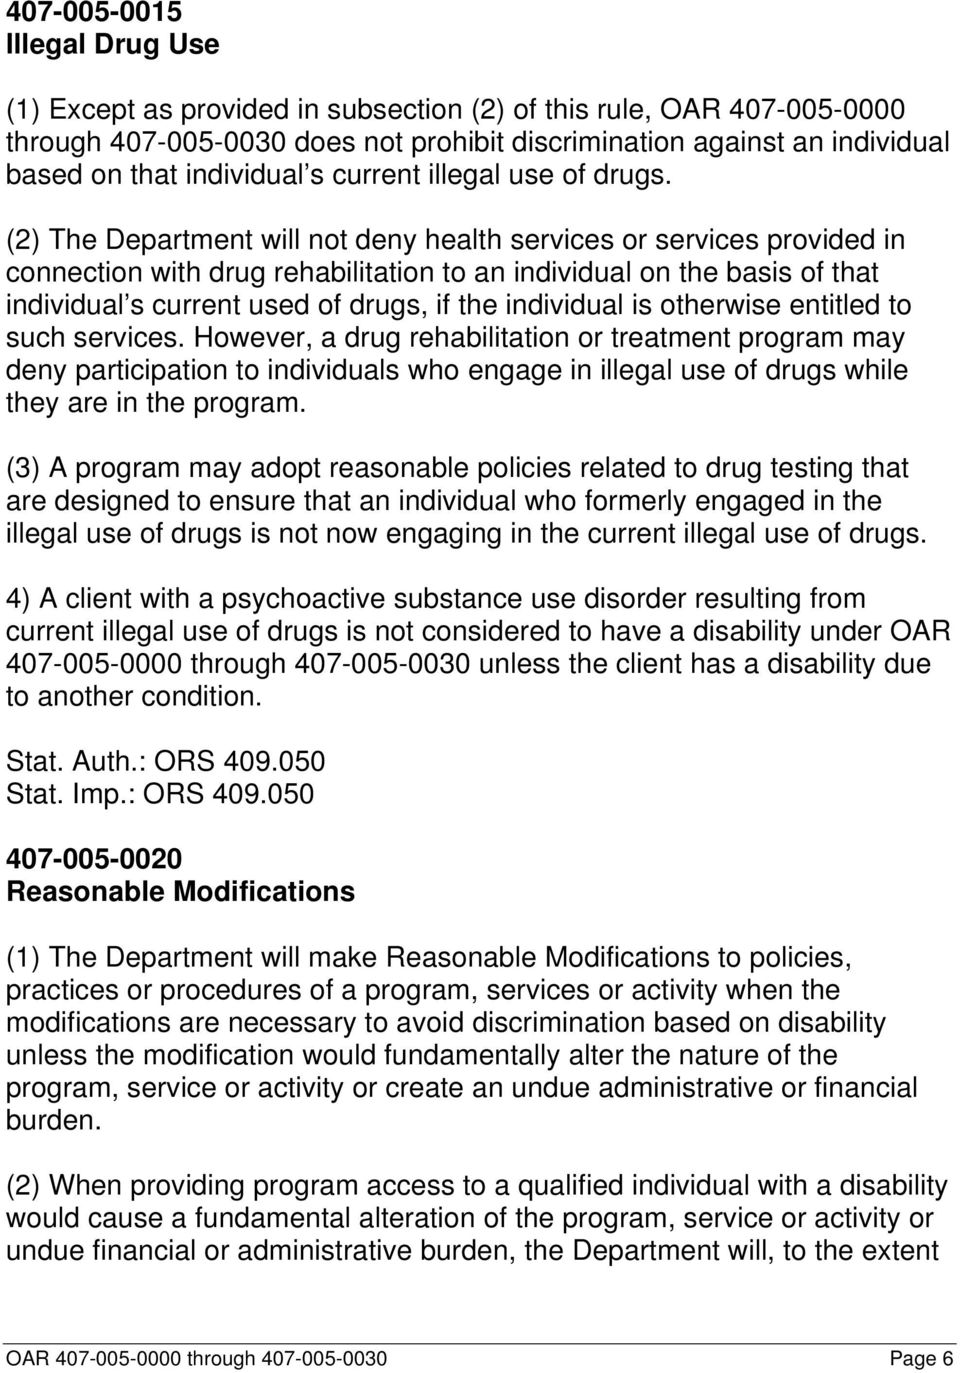 (2) The Department will not deny health services or services provided in connection with drug rehabilitation to an individual on the basis of that individual s current used of drugs, if the